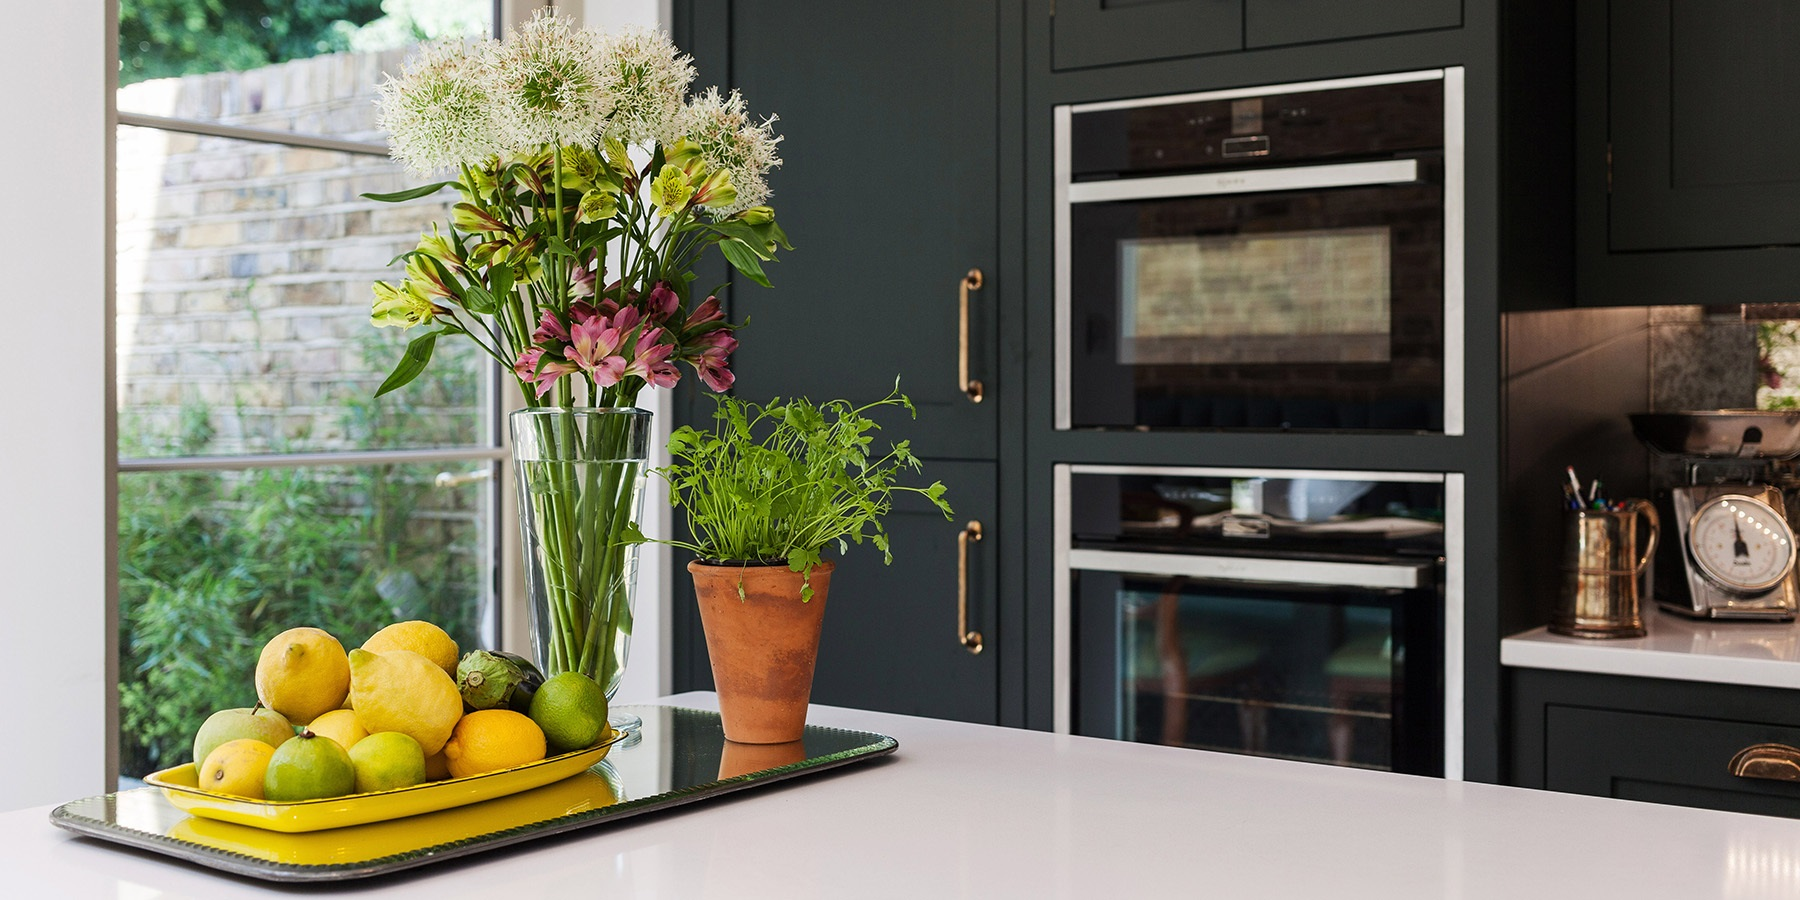 Burlanes Hoyden Kitchen - Handmade Burlanes Hoyden kitchen handpainted in Studio Green by Farrow & Ball.